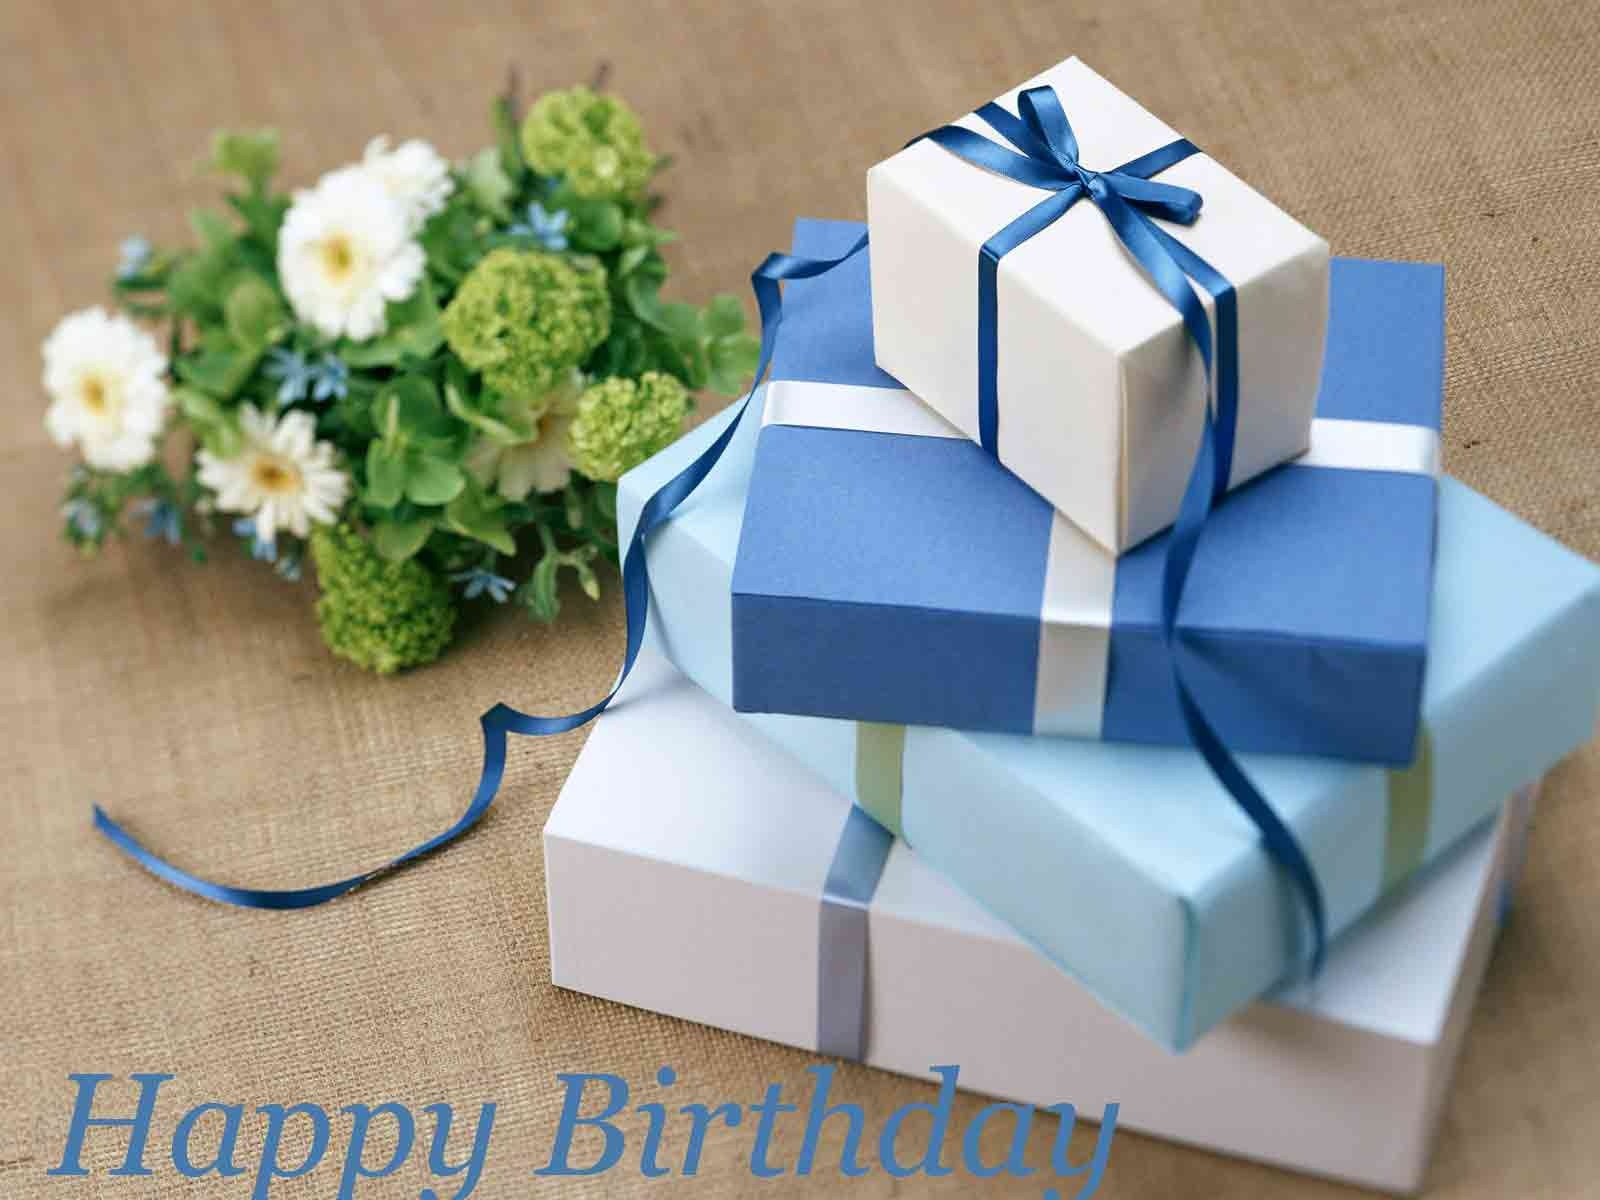 hd wallpapers for birthday wishes ; happy-birthday-greeting-wishes-hd-images